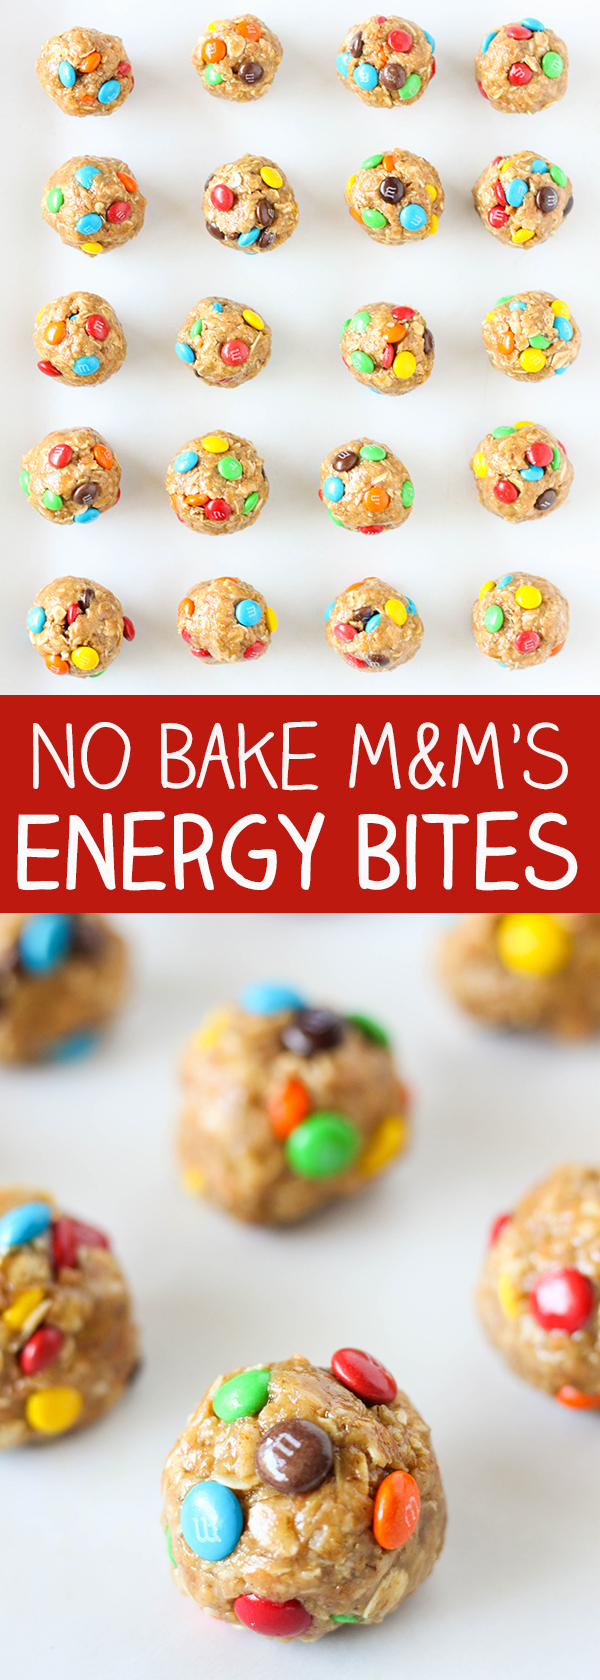 No Bake M&M'S Energy Bites - perfect for meal prep or school lunches!